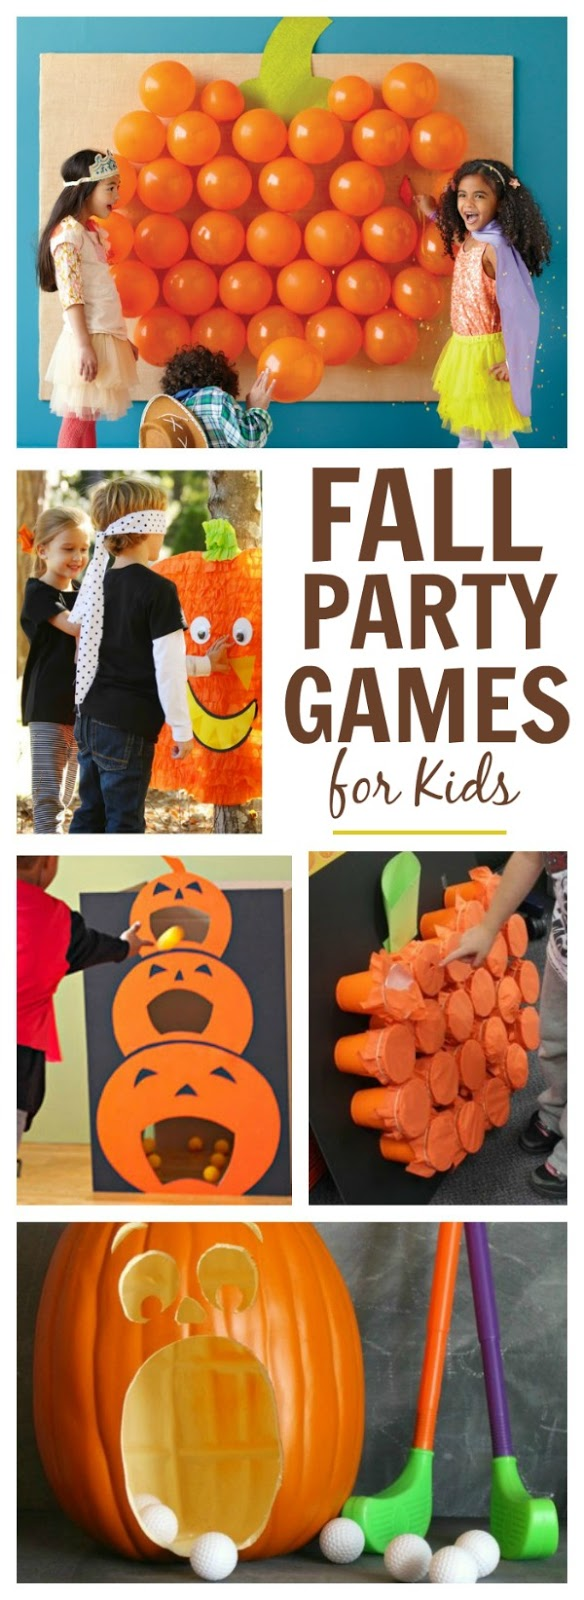 FALL PARTY GAMES FOR KIDS- cute ideas!